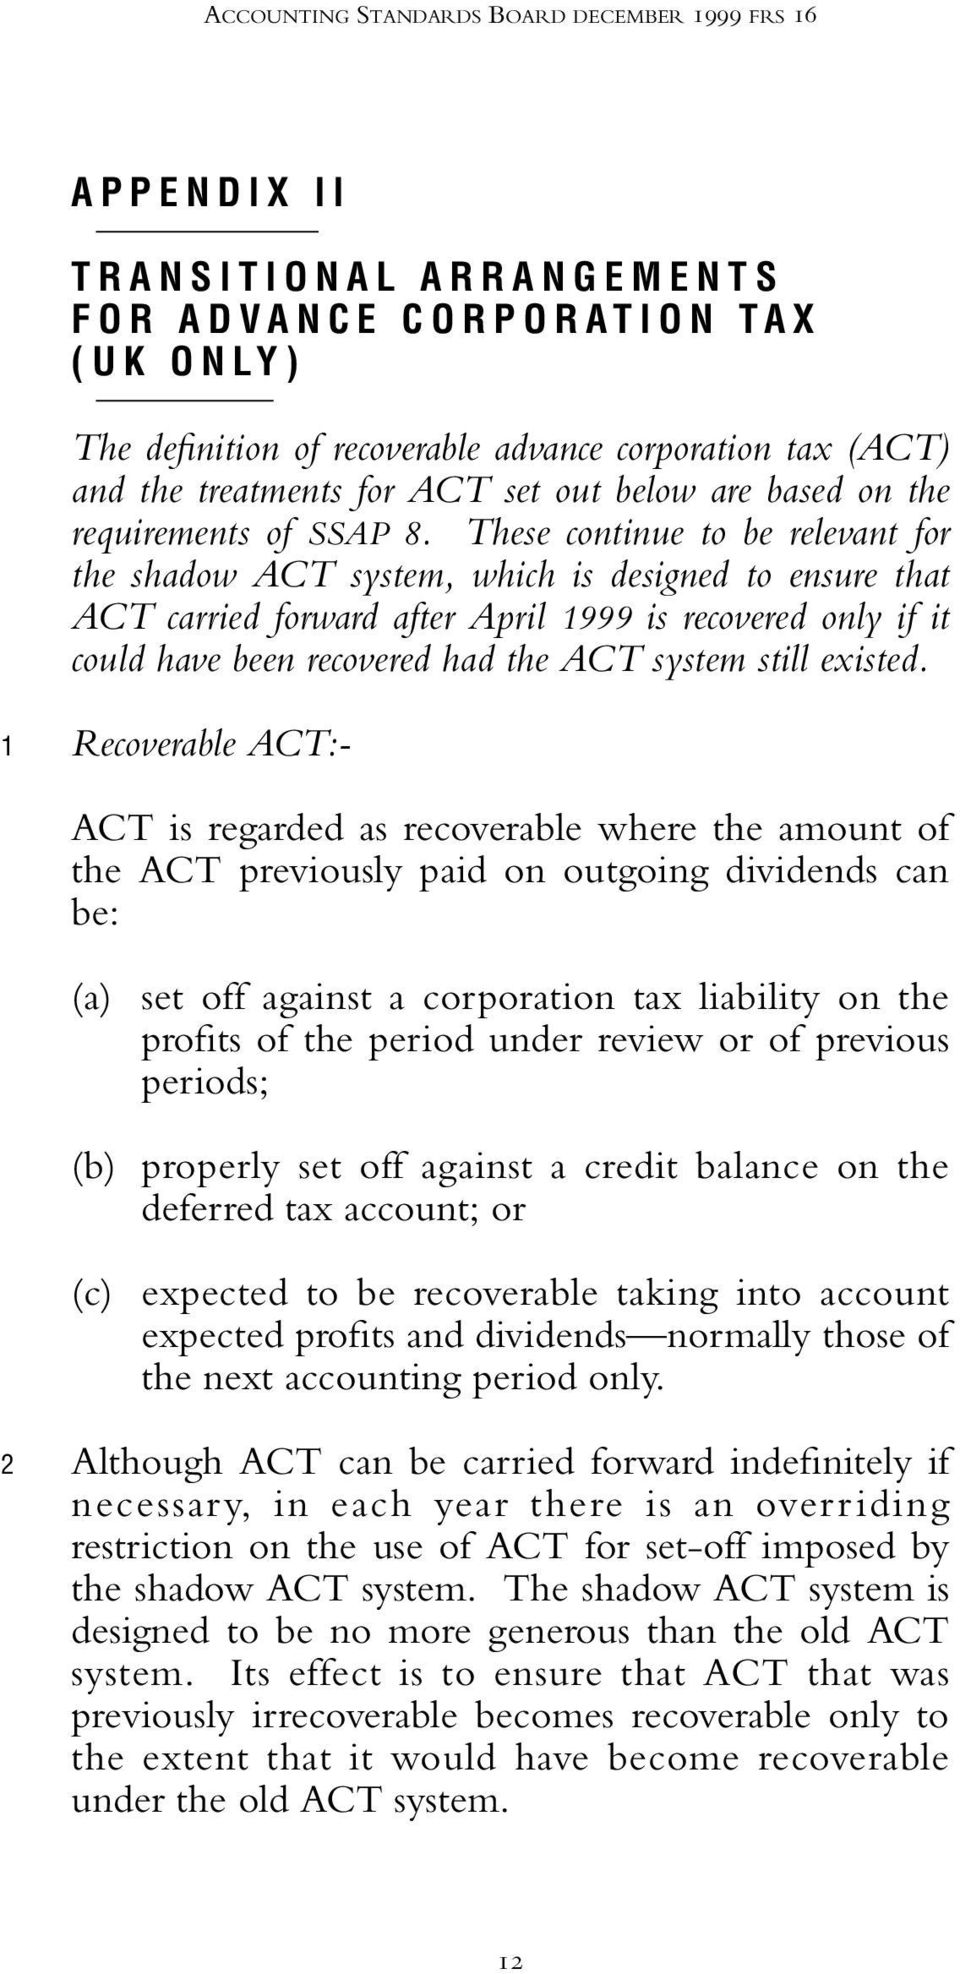 These continue to be relevant for the shadow ACT system, which is designed to ensure that ACT carried forward after April 1999 is recovered only if it could have been recovered had the ACT system